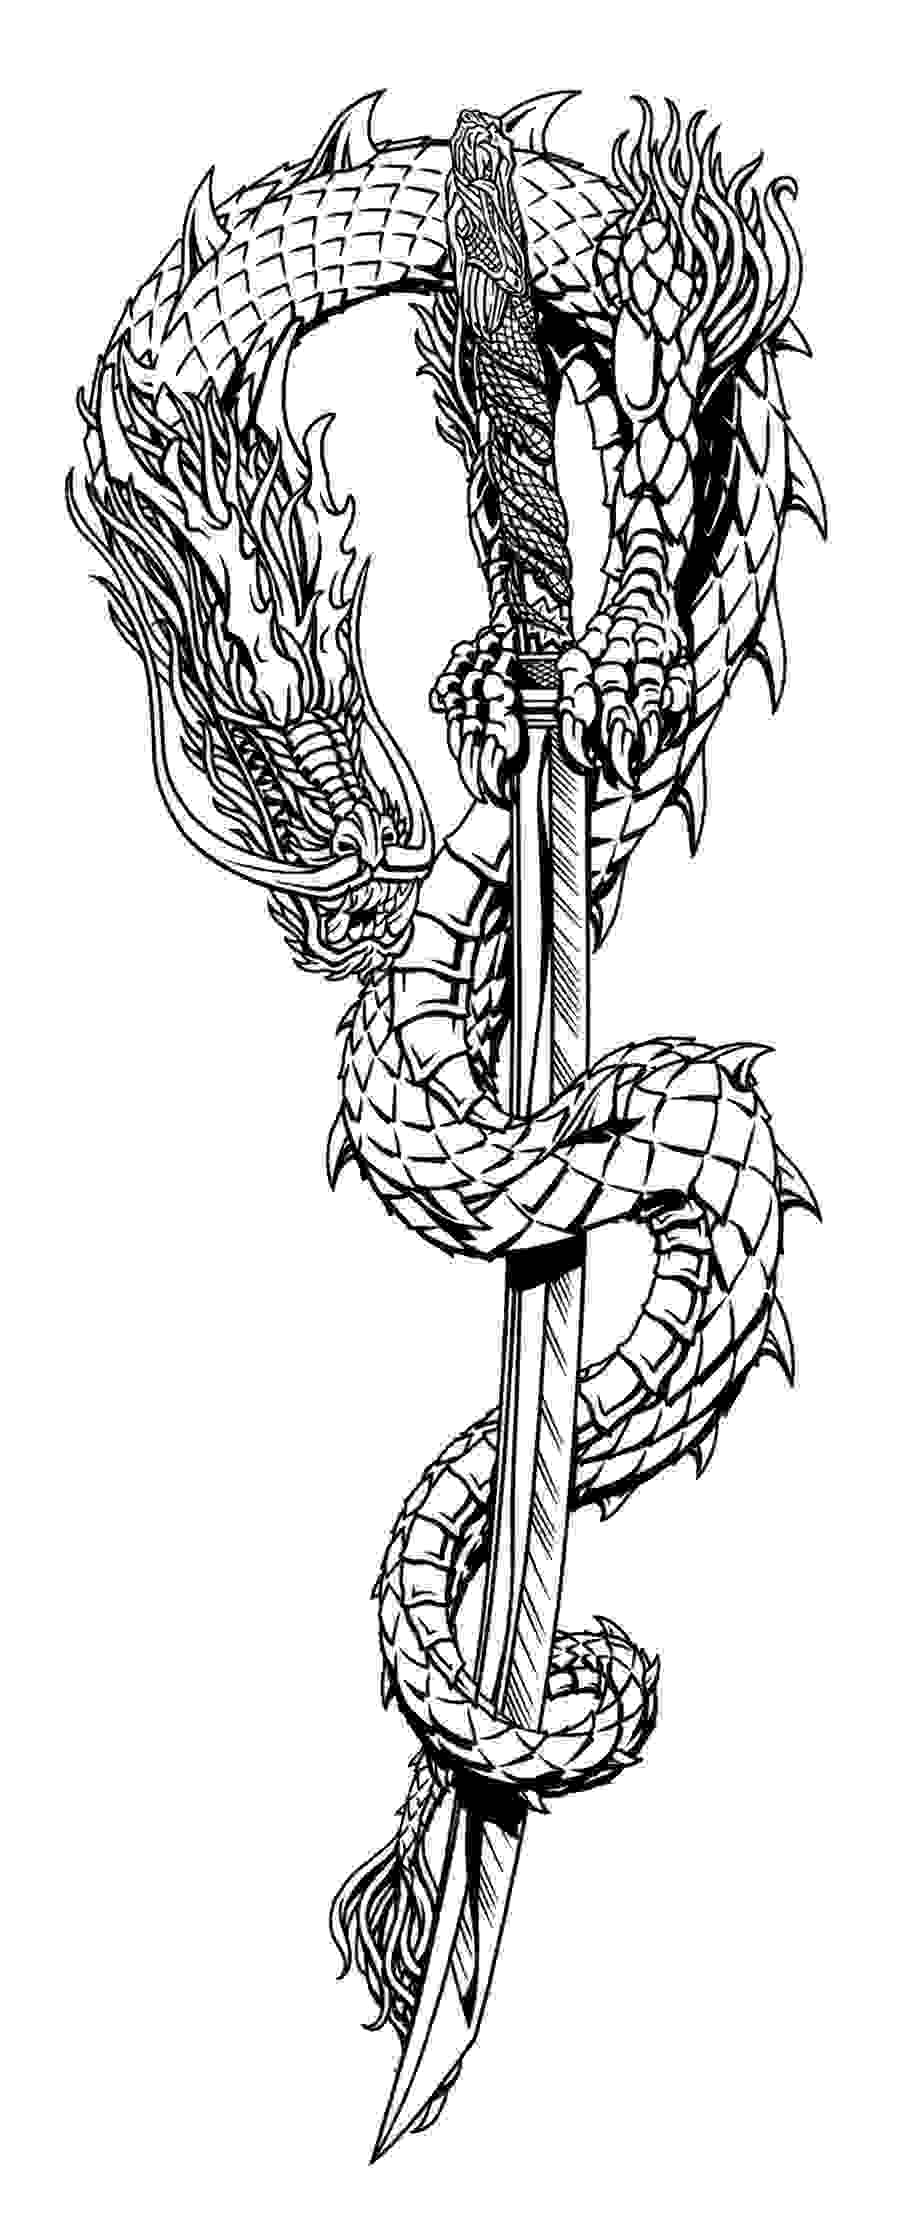 Gin Ryu Dragon And Sword Tattoo Designs